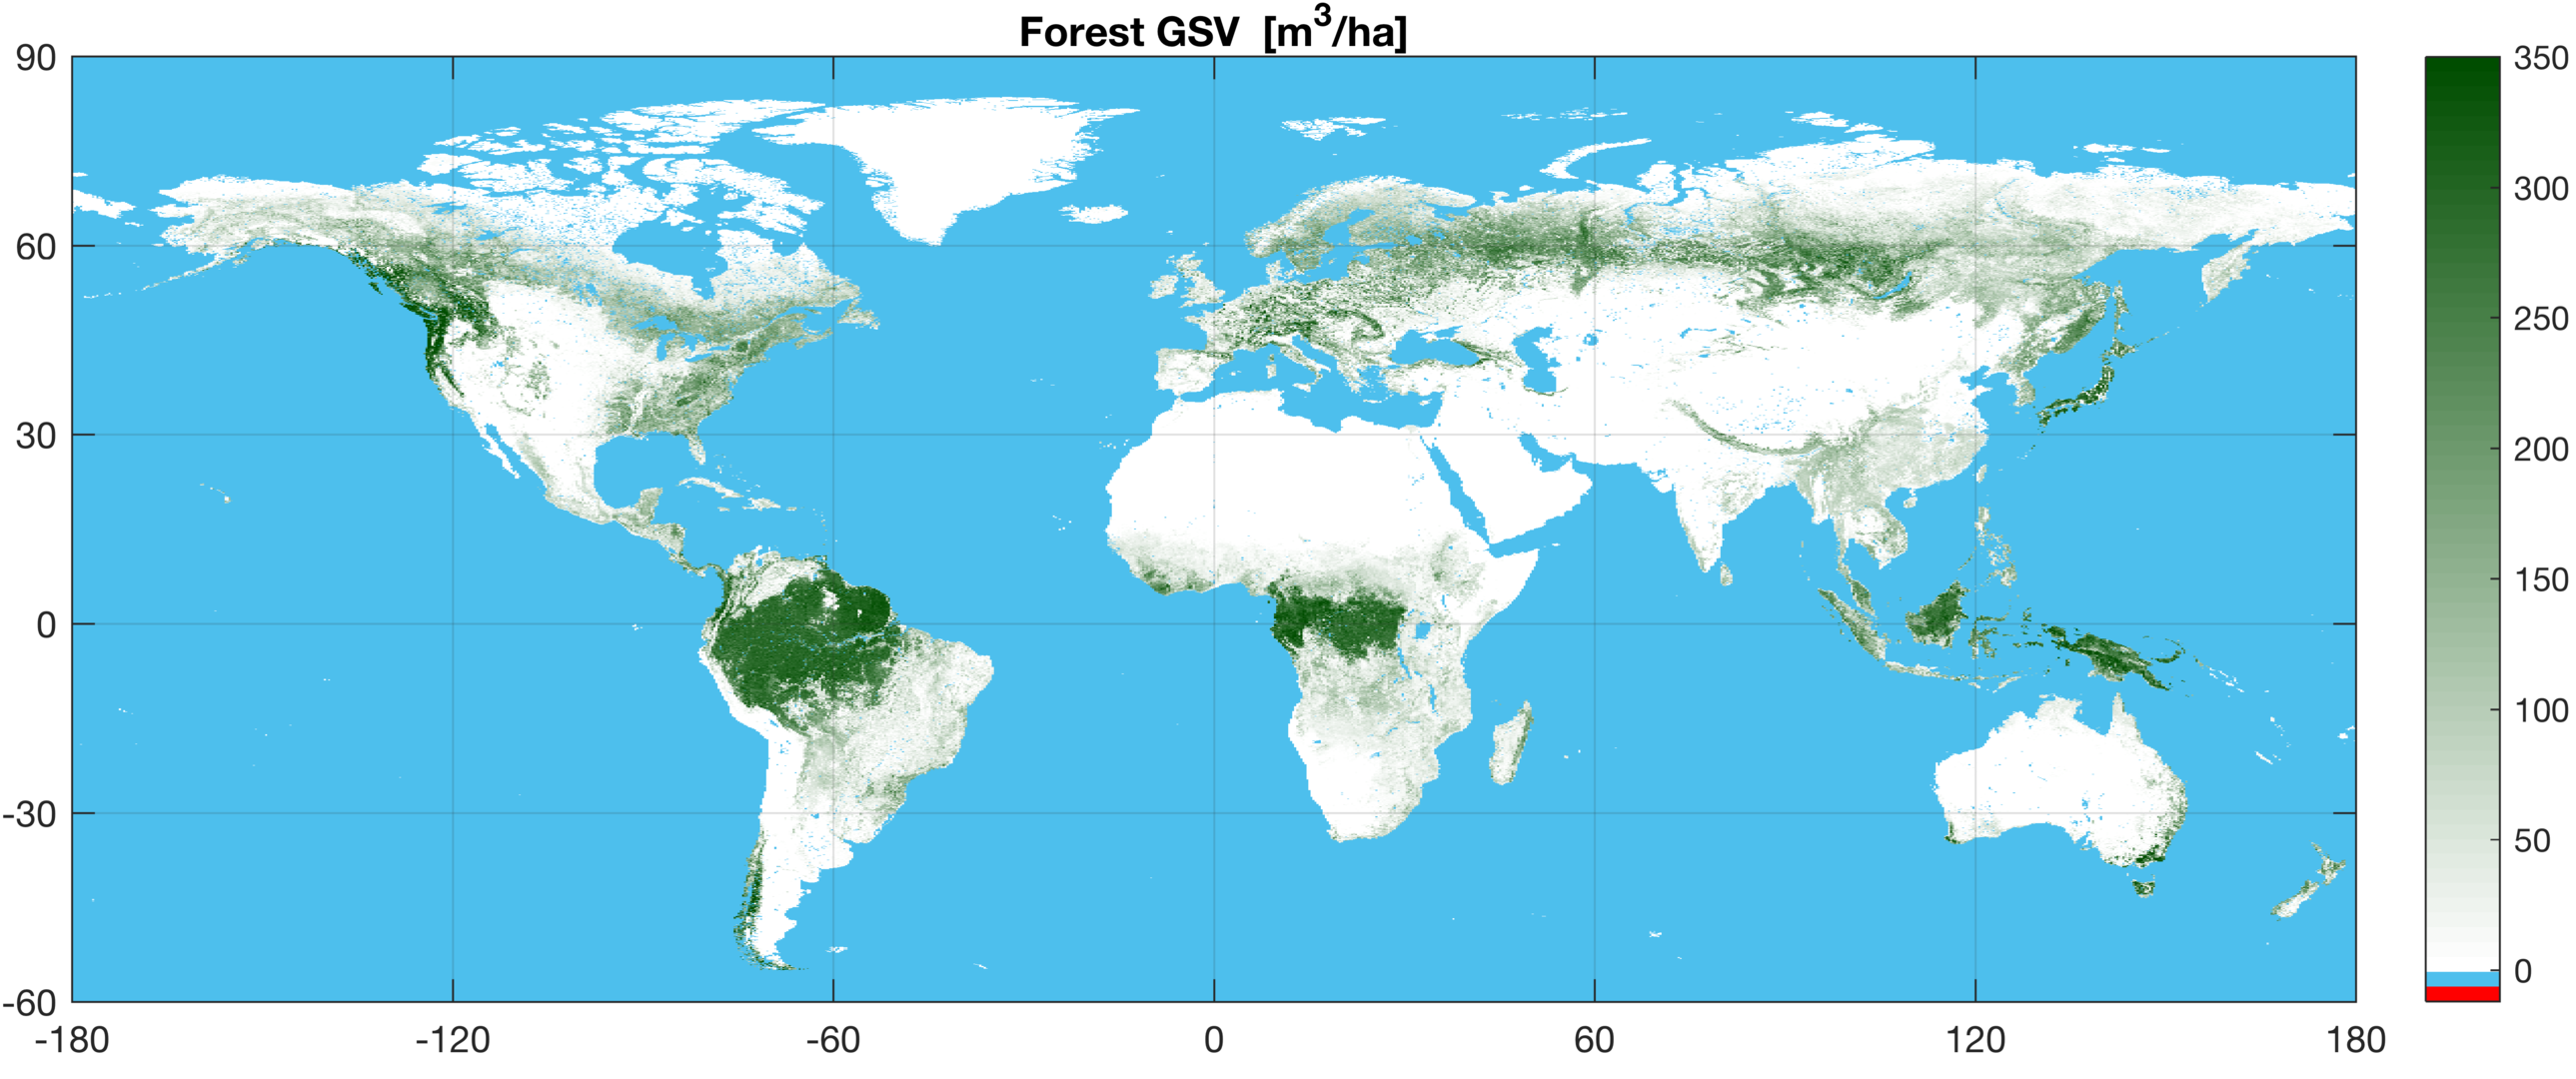 Global biomass for 2010